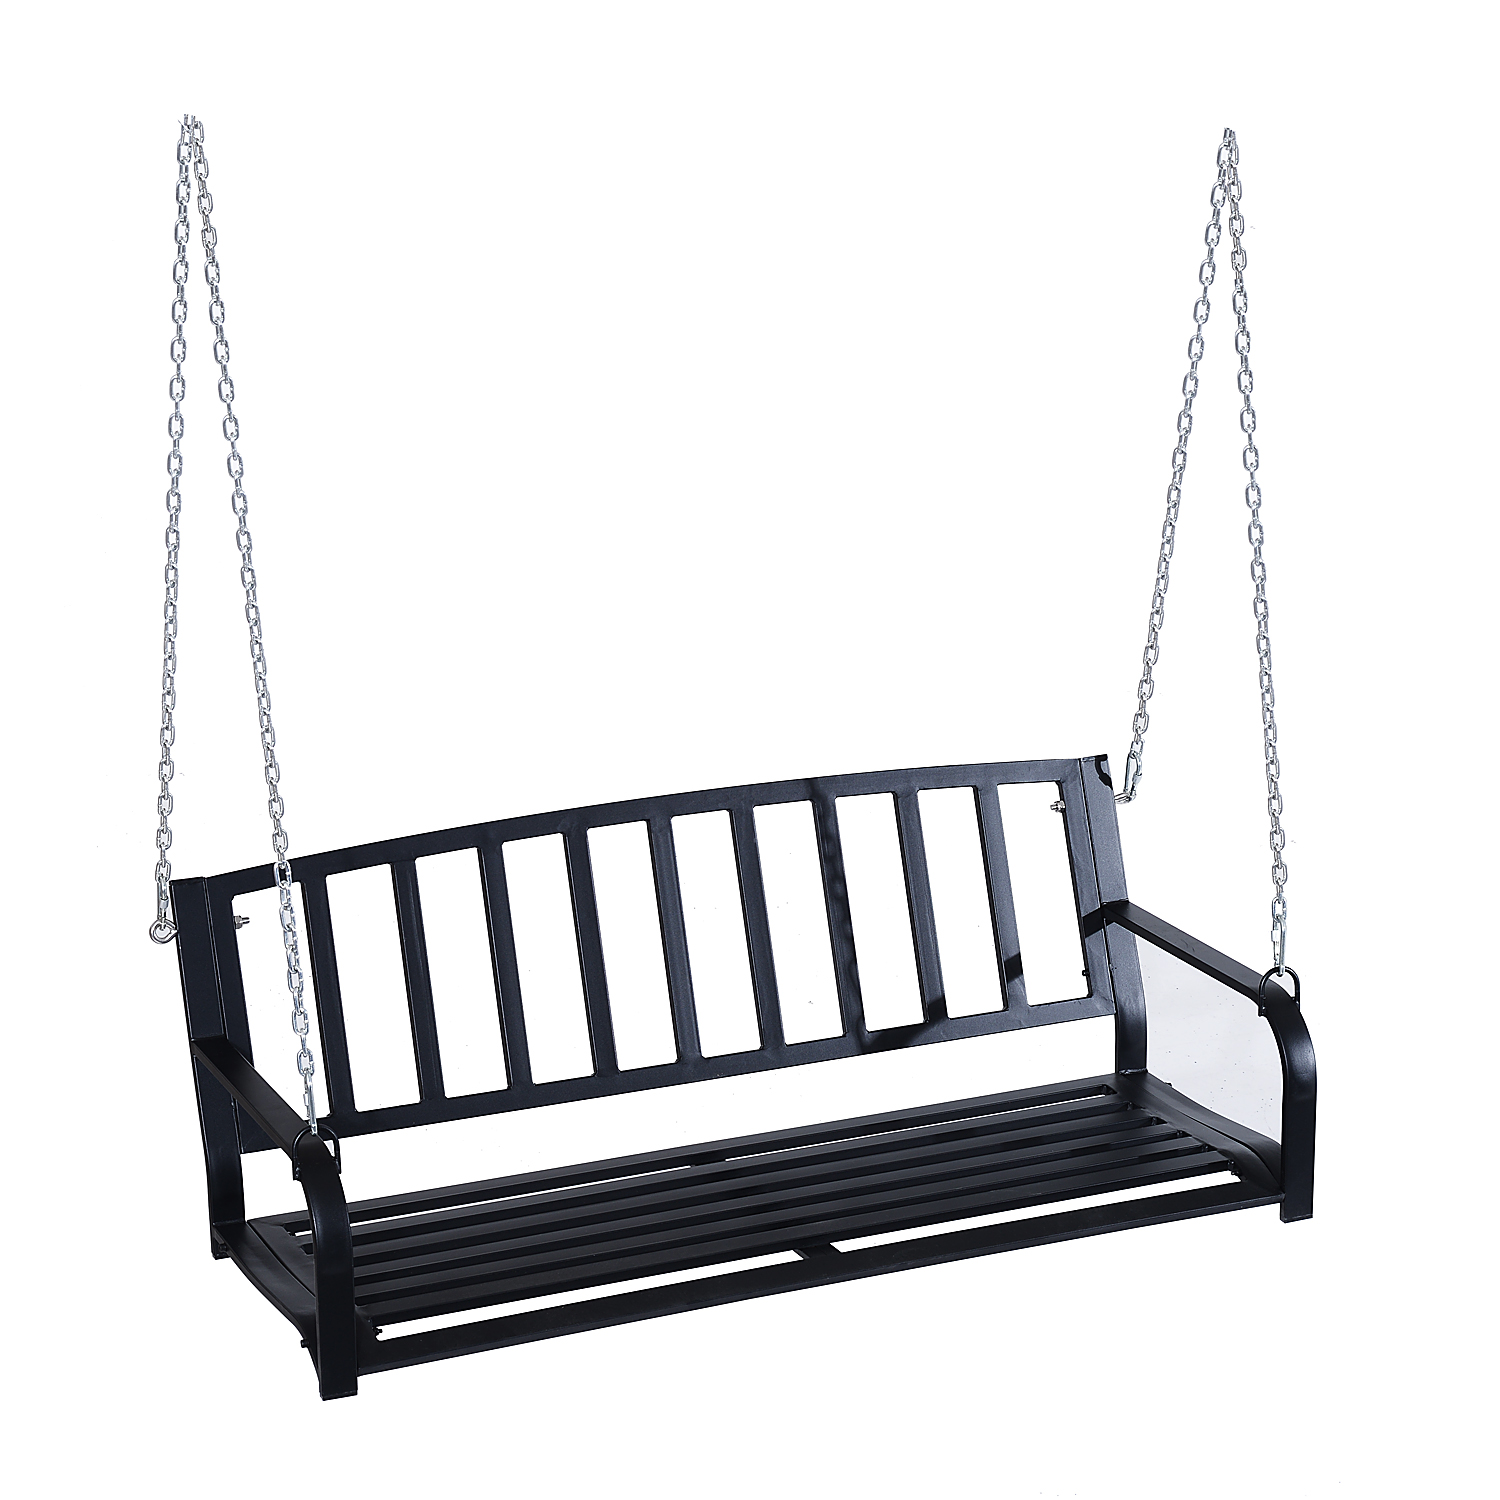 Outsunny Porch Swing 2 Person Outdoor Porch Swing Bench Black by Aosom